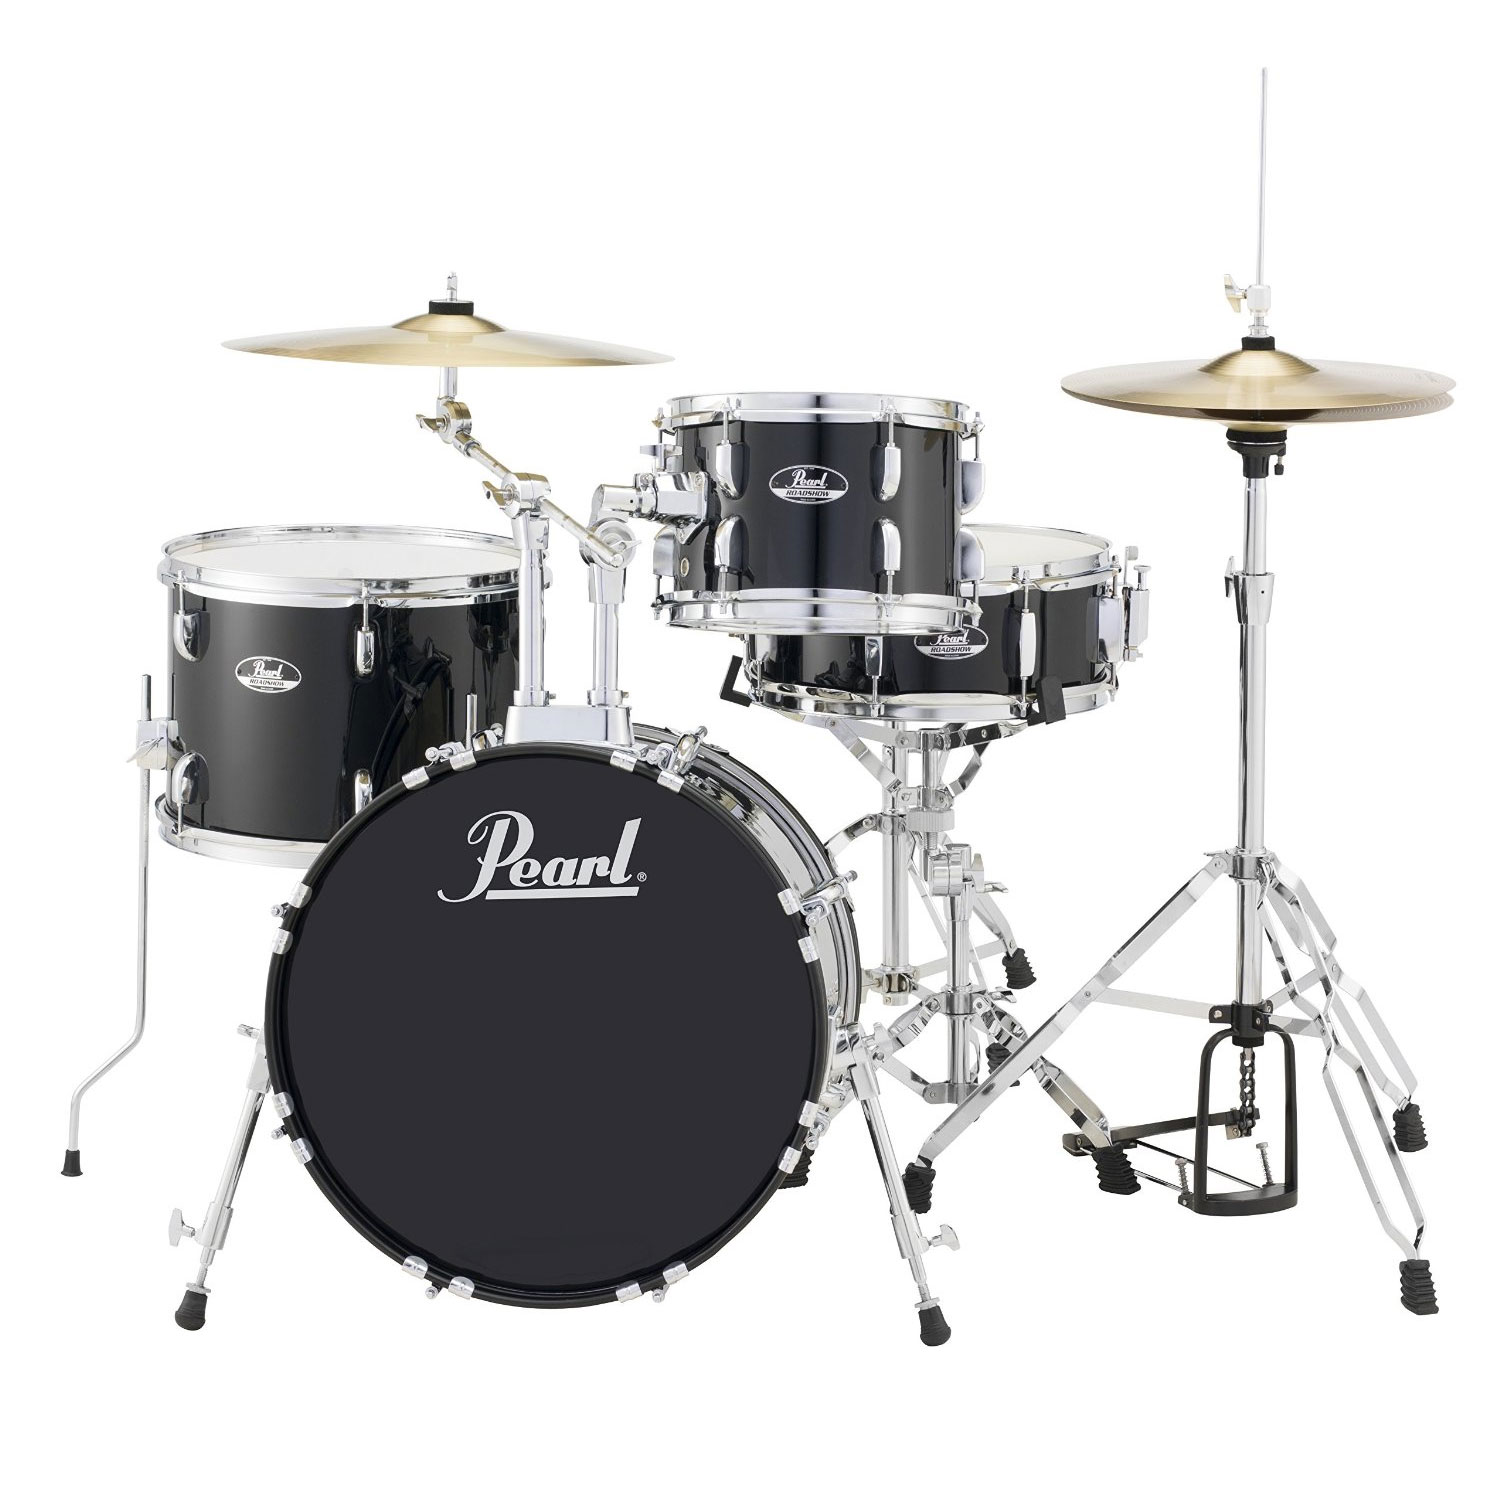 pearl roadshow bop 4 piece drum set with hardware and cymbals 18 bass 10 14 toms 13 snare. Black Bedroom Furniture Sets. Home Design Ideas